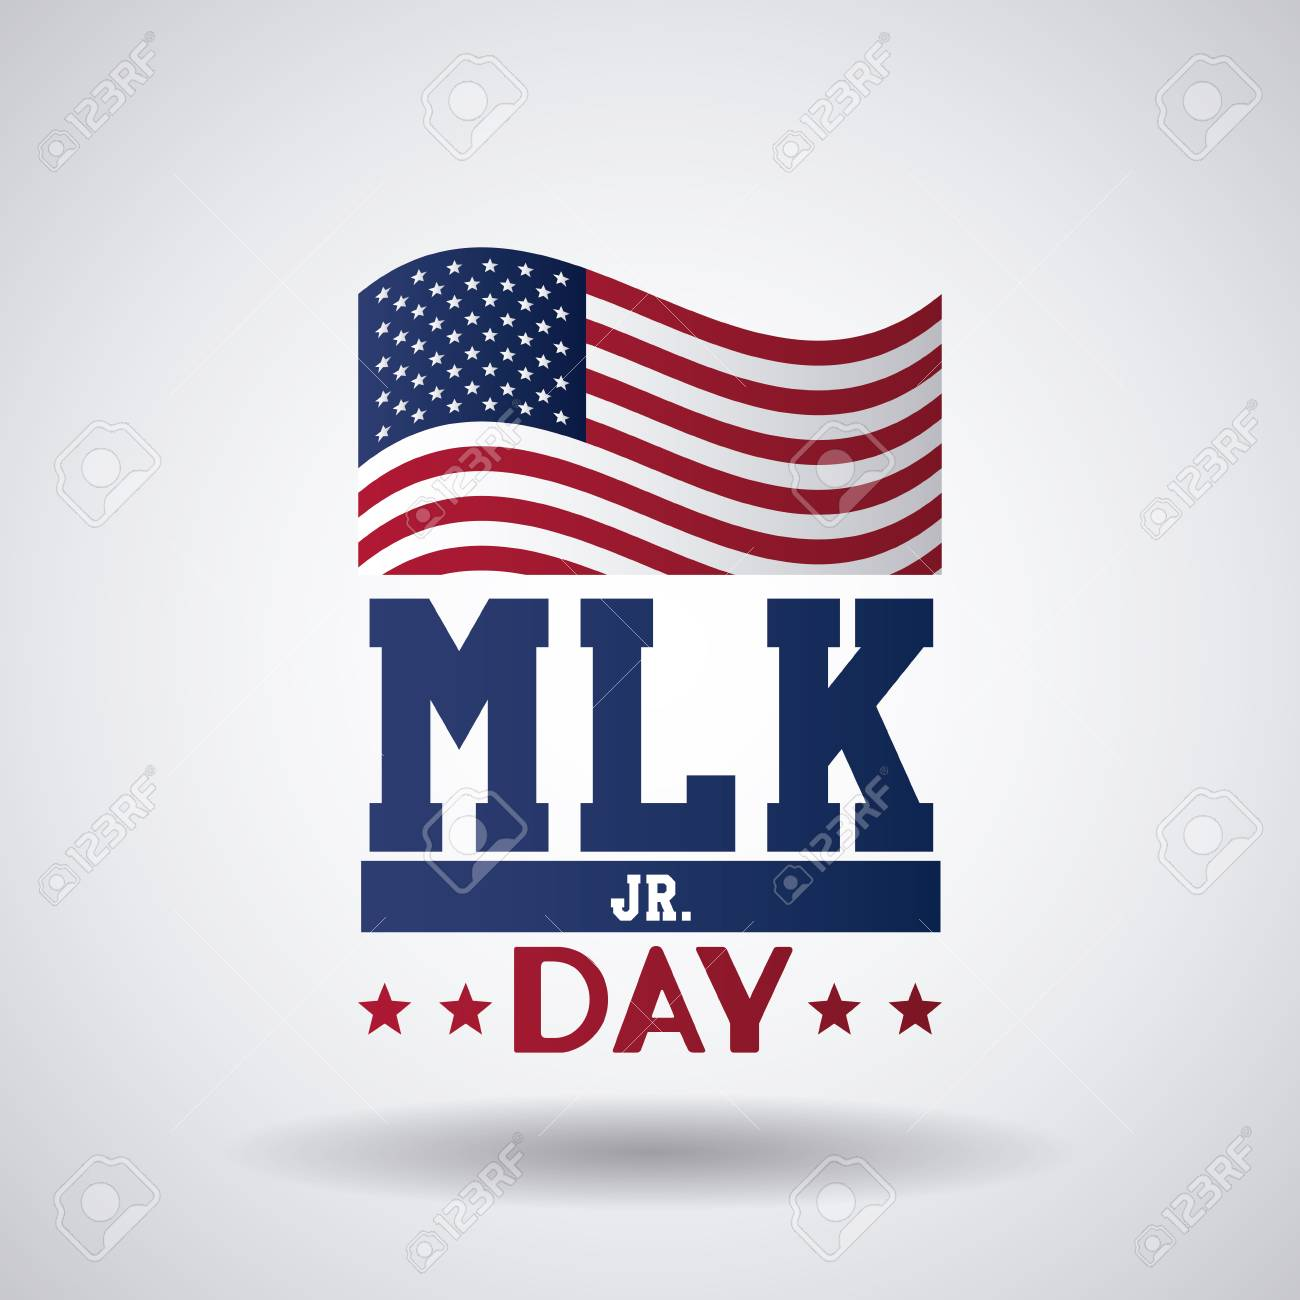 Martin luther king JR day icon vector illustration graphic - 90253809